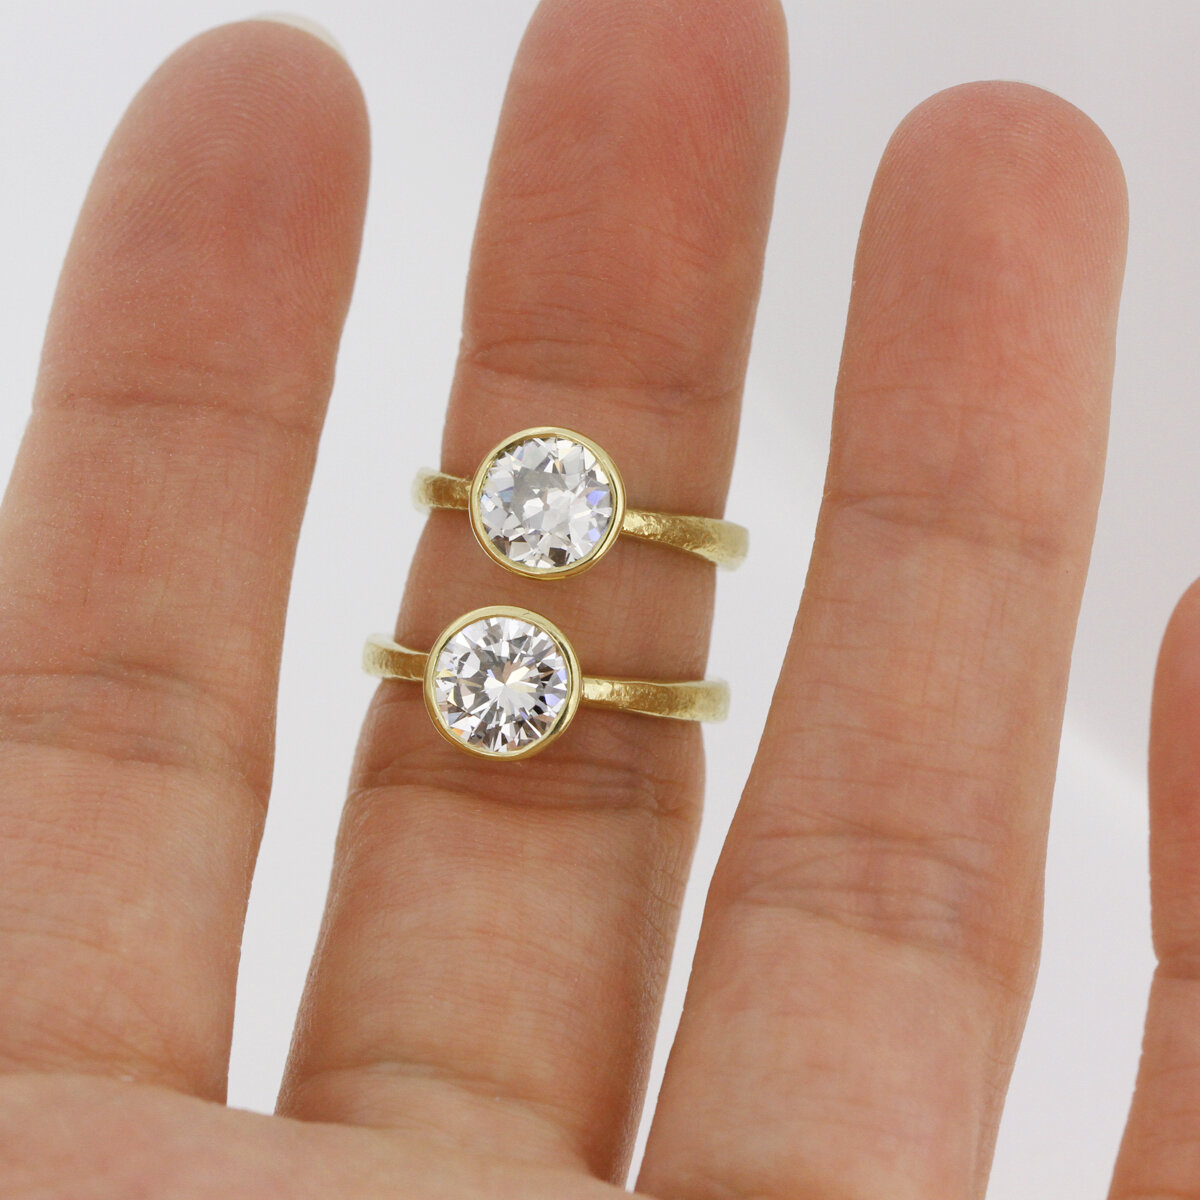 Old European on top, Round Brilliant on bottom. Notice the different facet structure. The top stone has chunkier facets and you can see the culet right at the center, while the bottom stone has slimmer facets. Both 18k Custom Rings by Sophie Hughes.